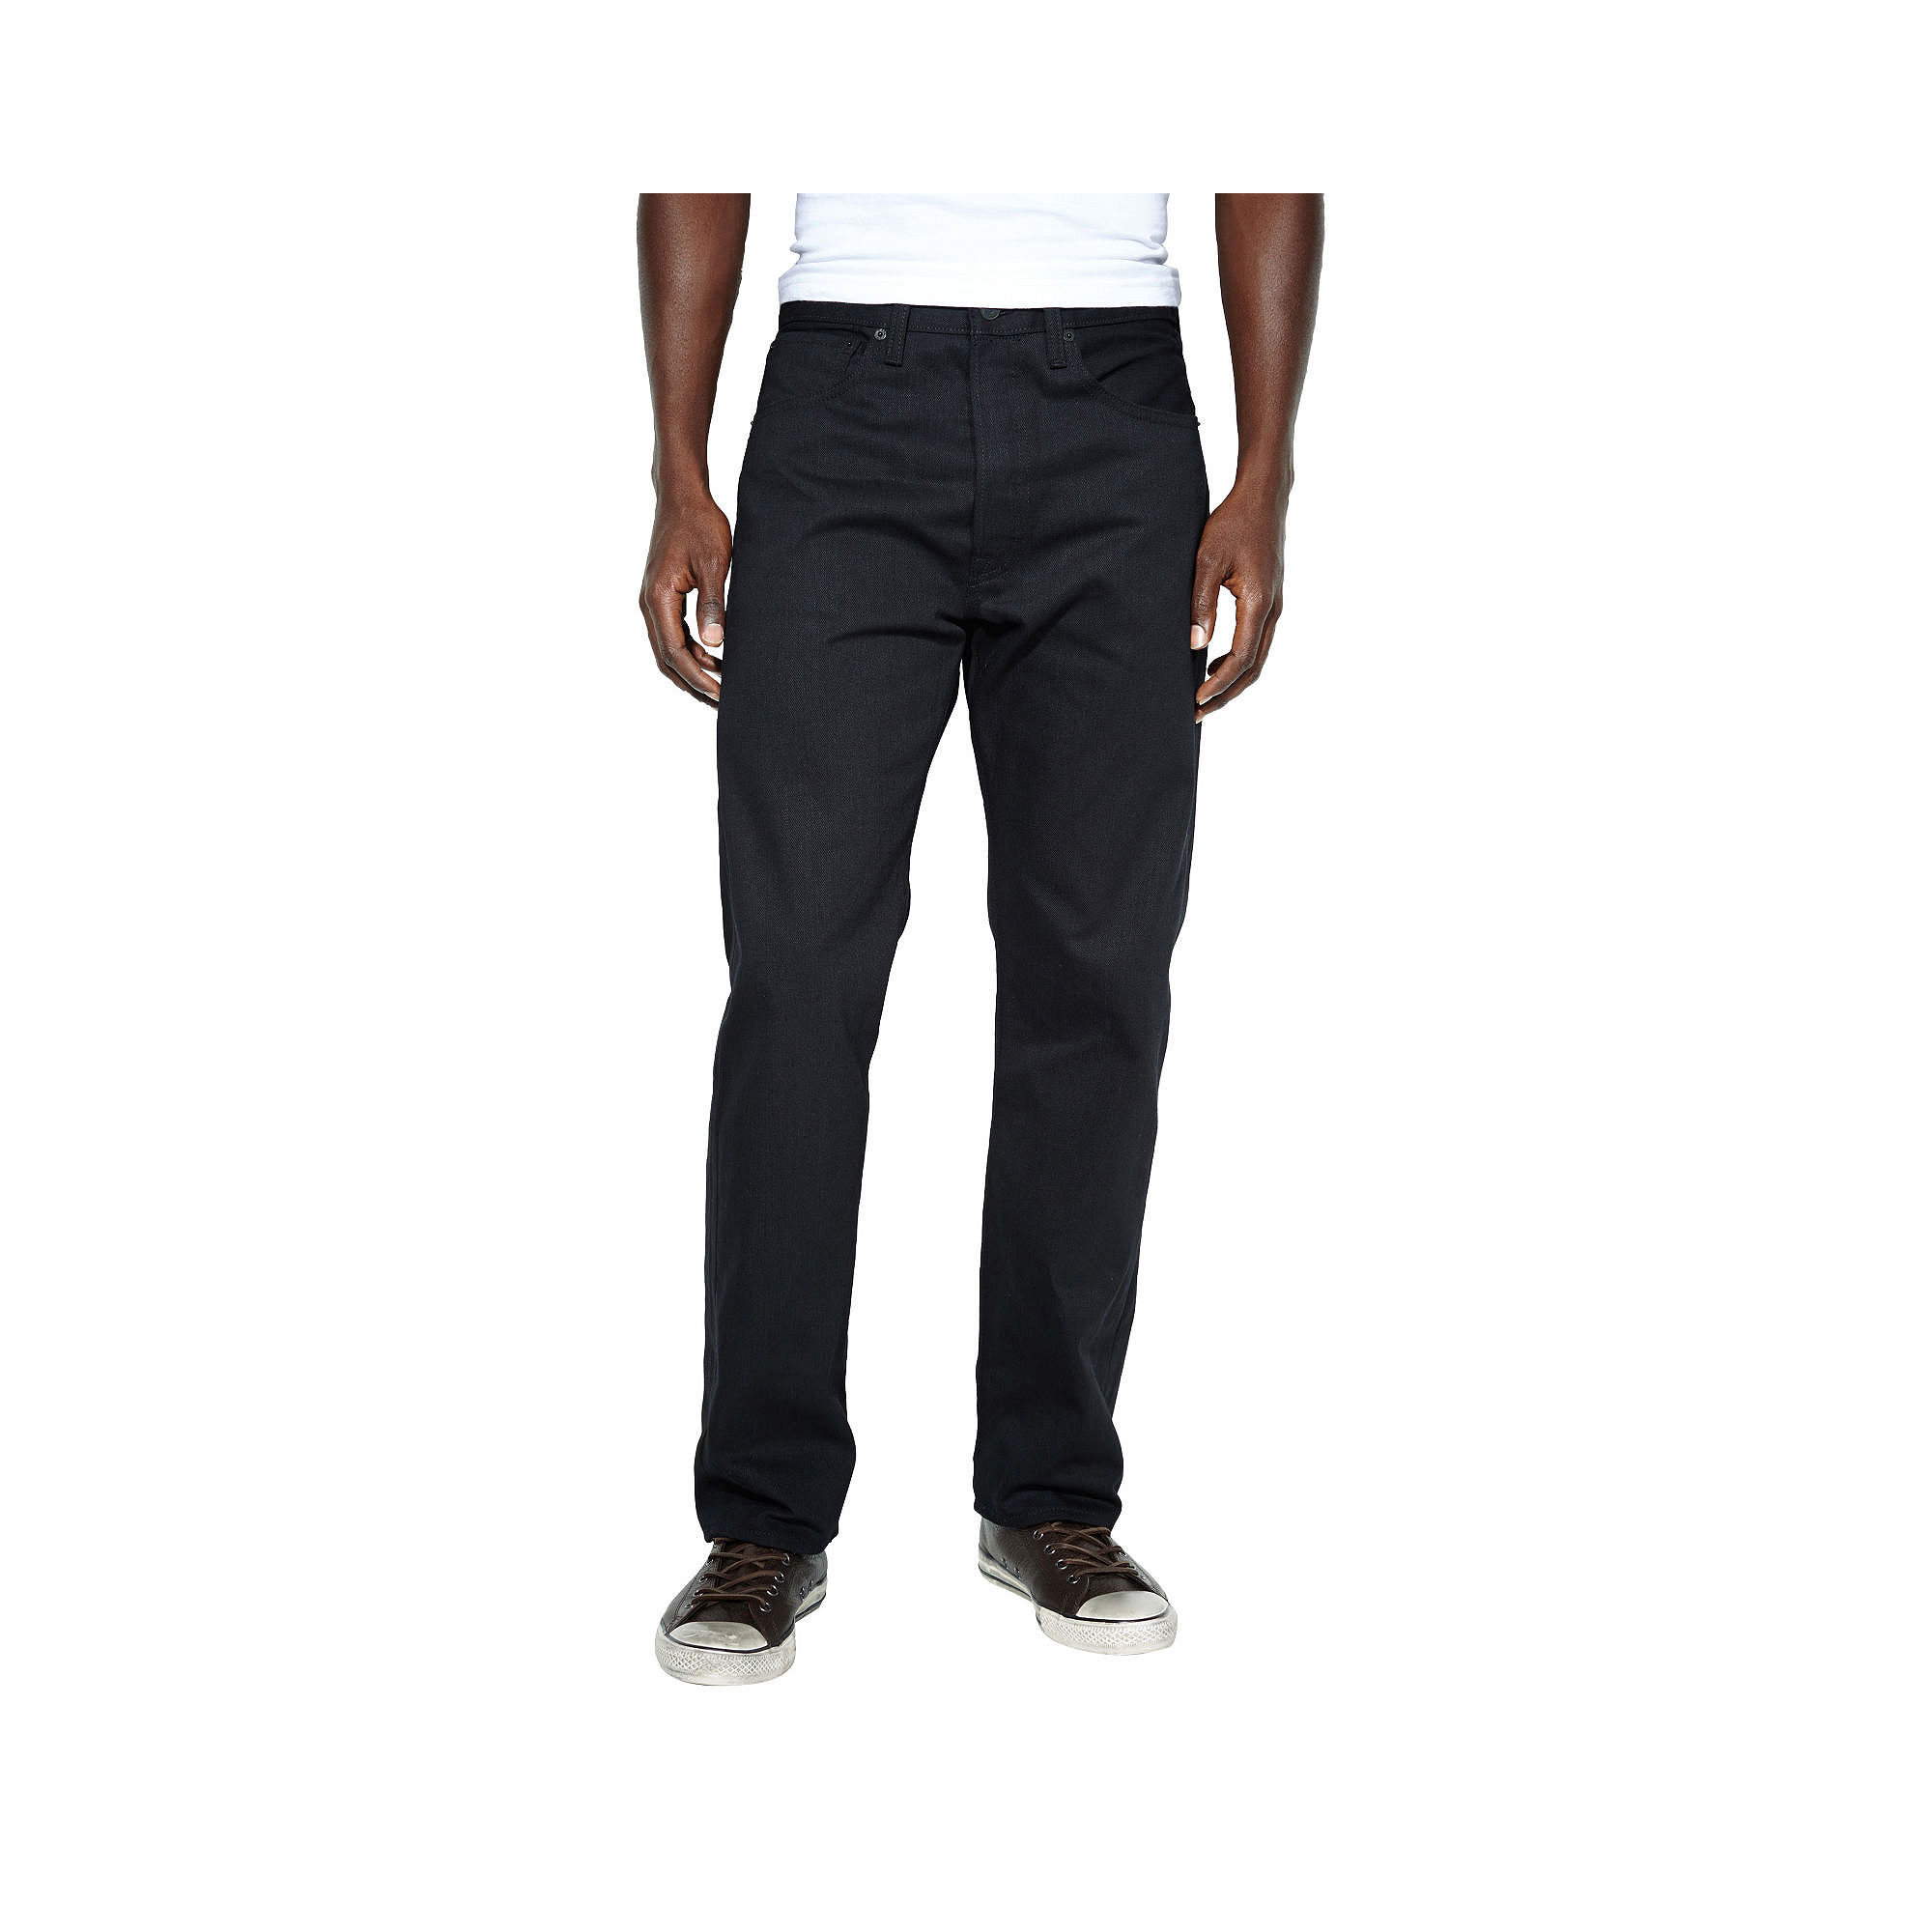 Levi's 501 Shrink-To-Fit Jeans